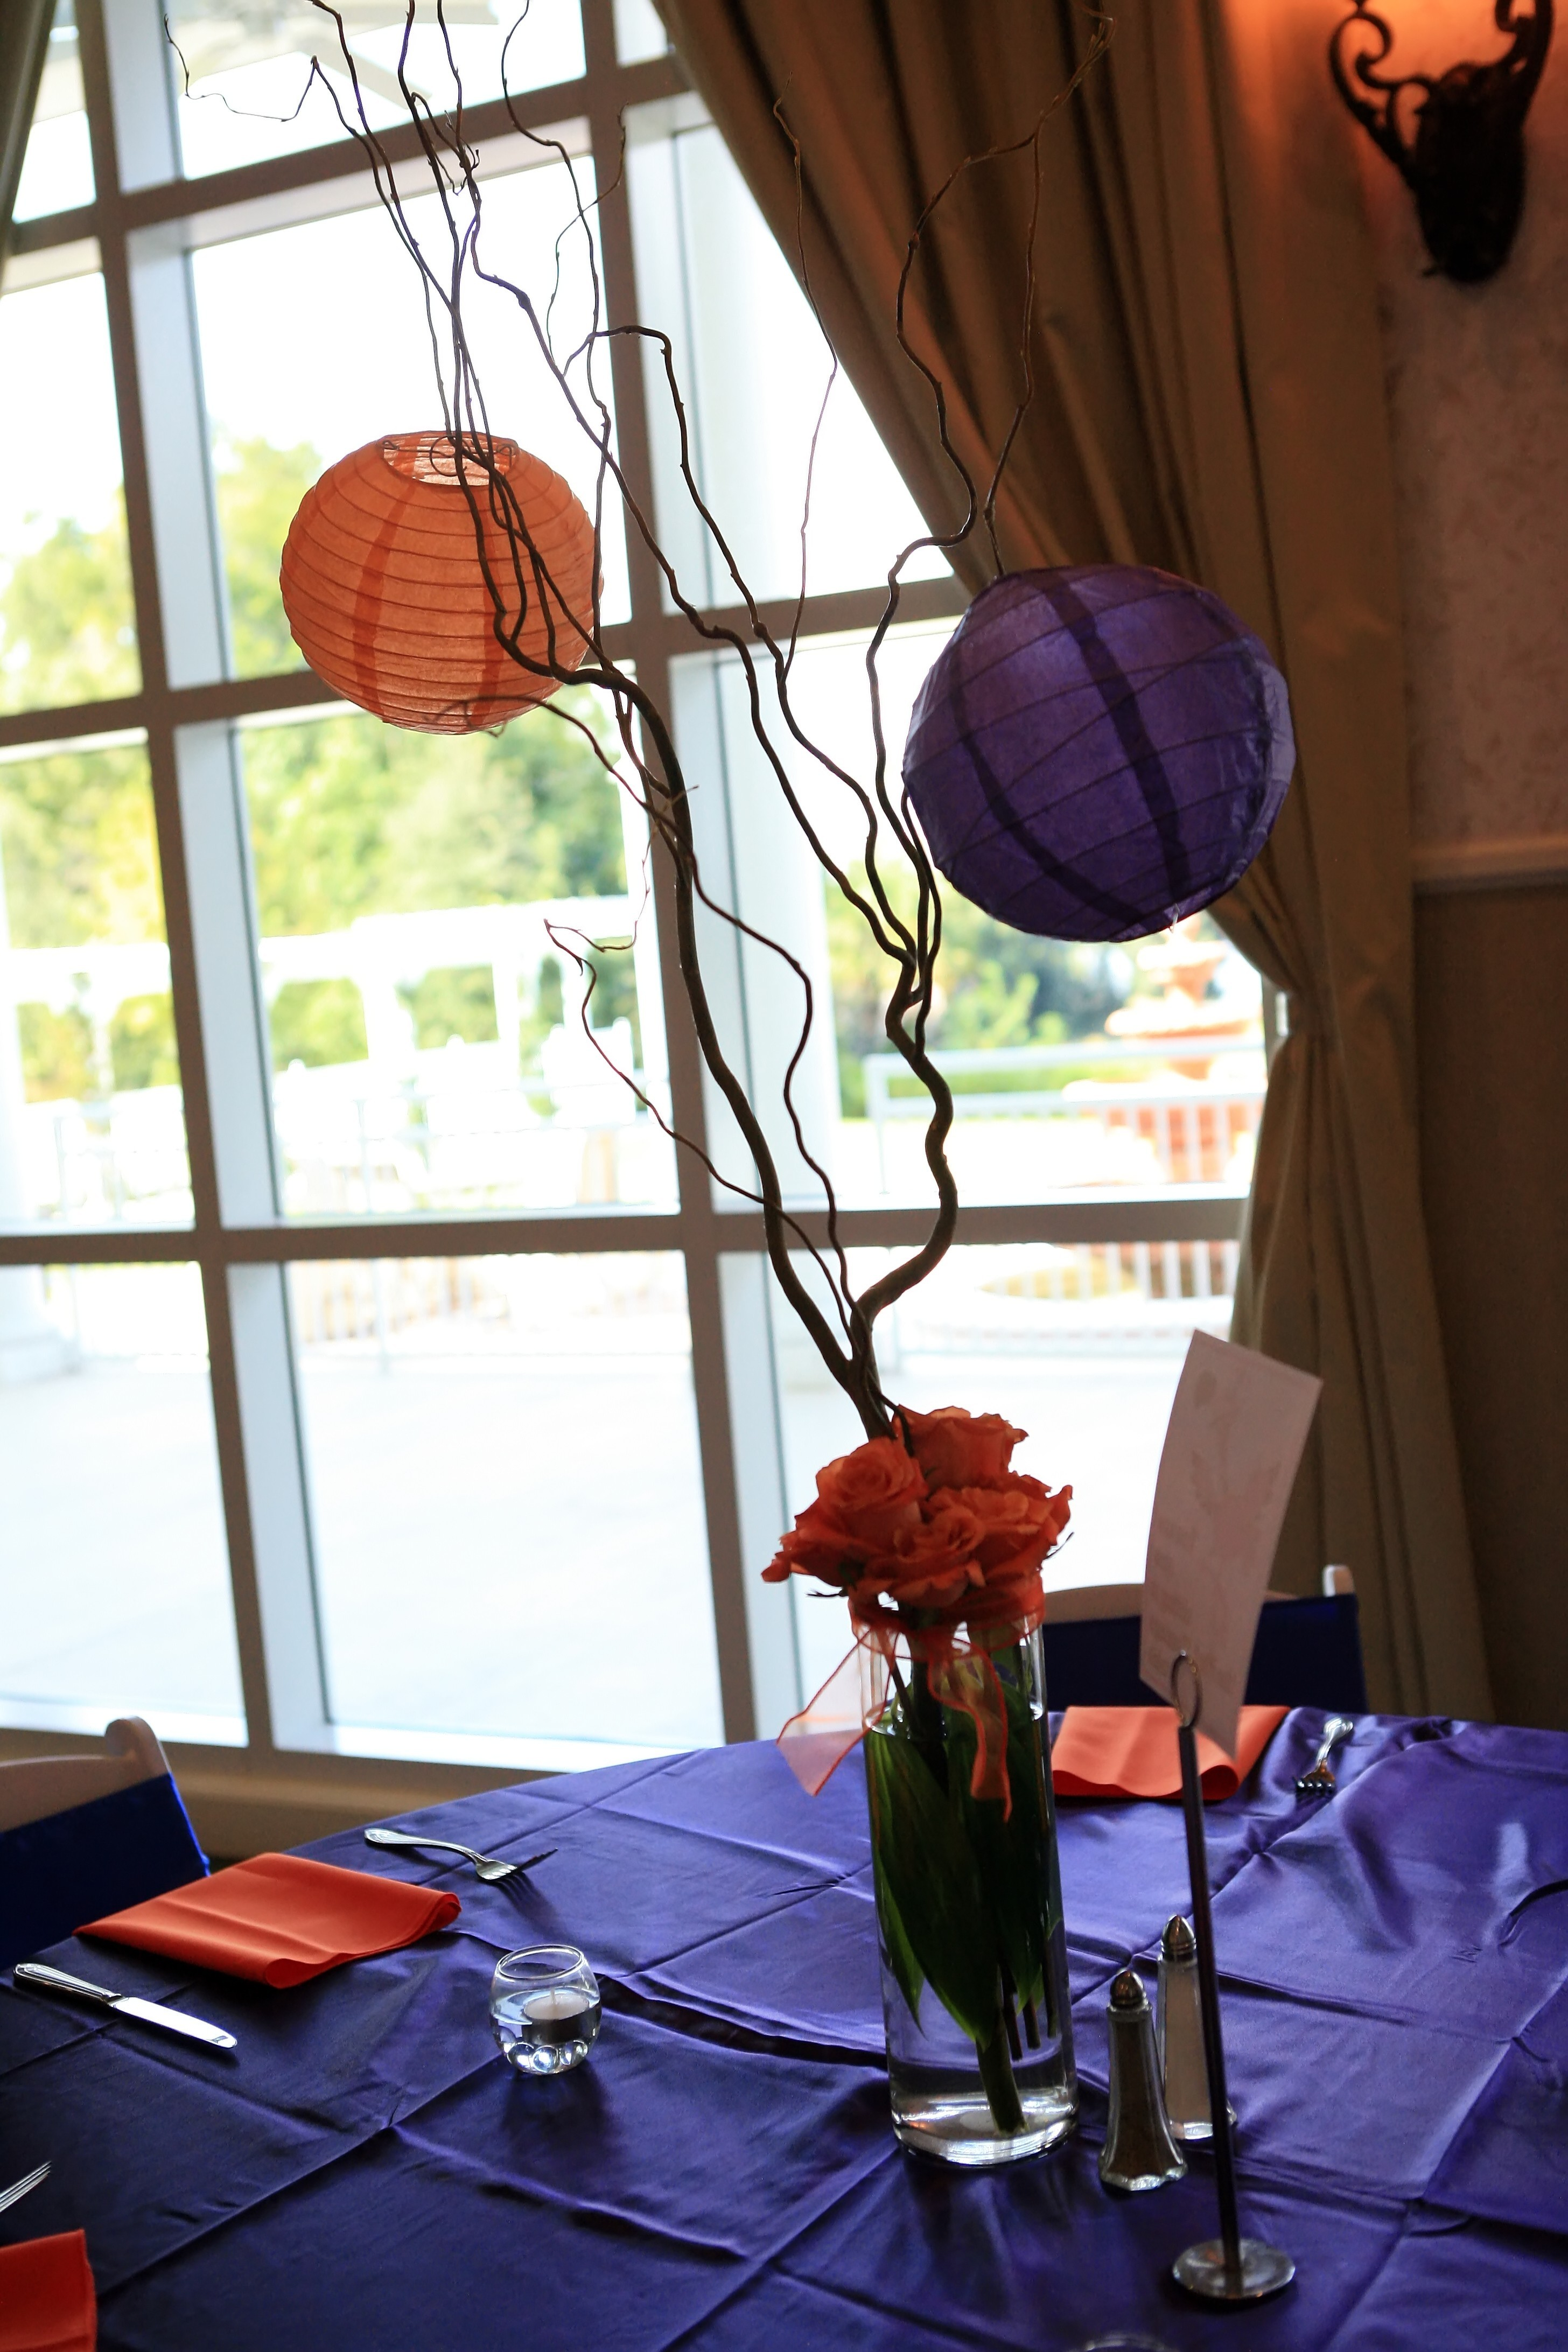 Flowers & Decor, orange, purple, blue, Centerpieces, Flowers, Roses, Centerpiece, Unique, Lanterns, Curly willow